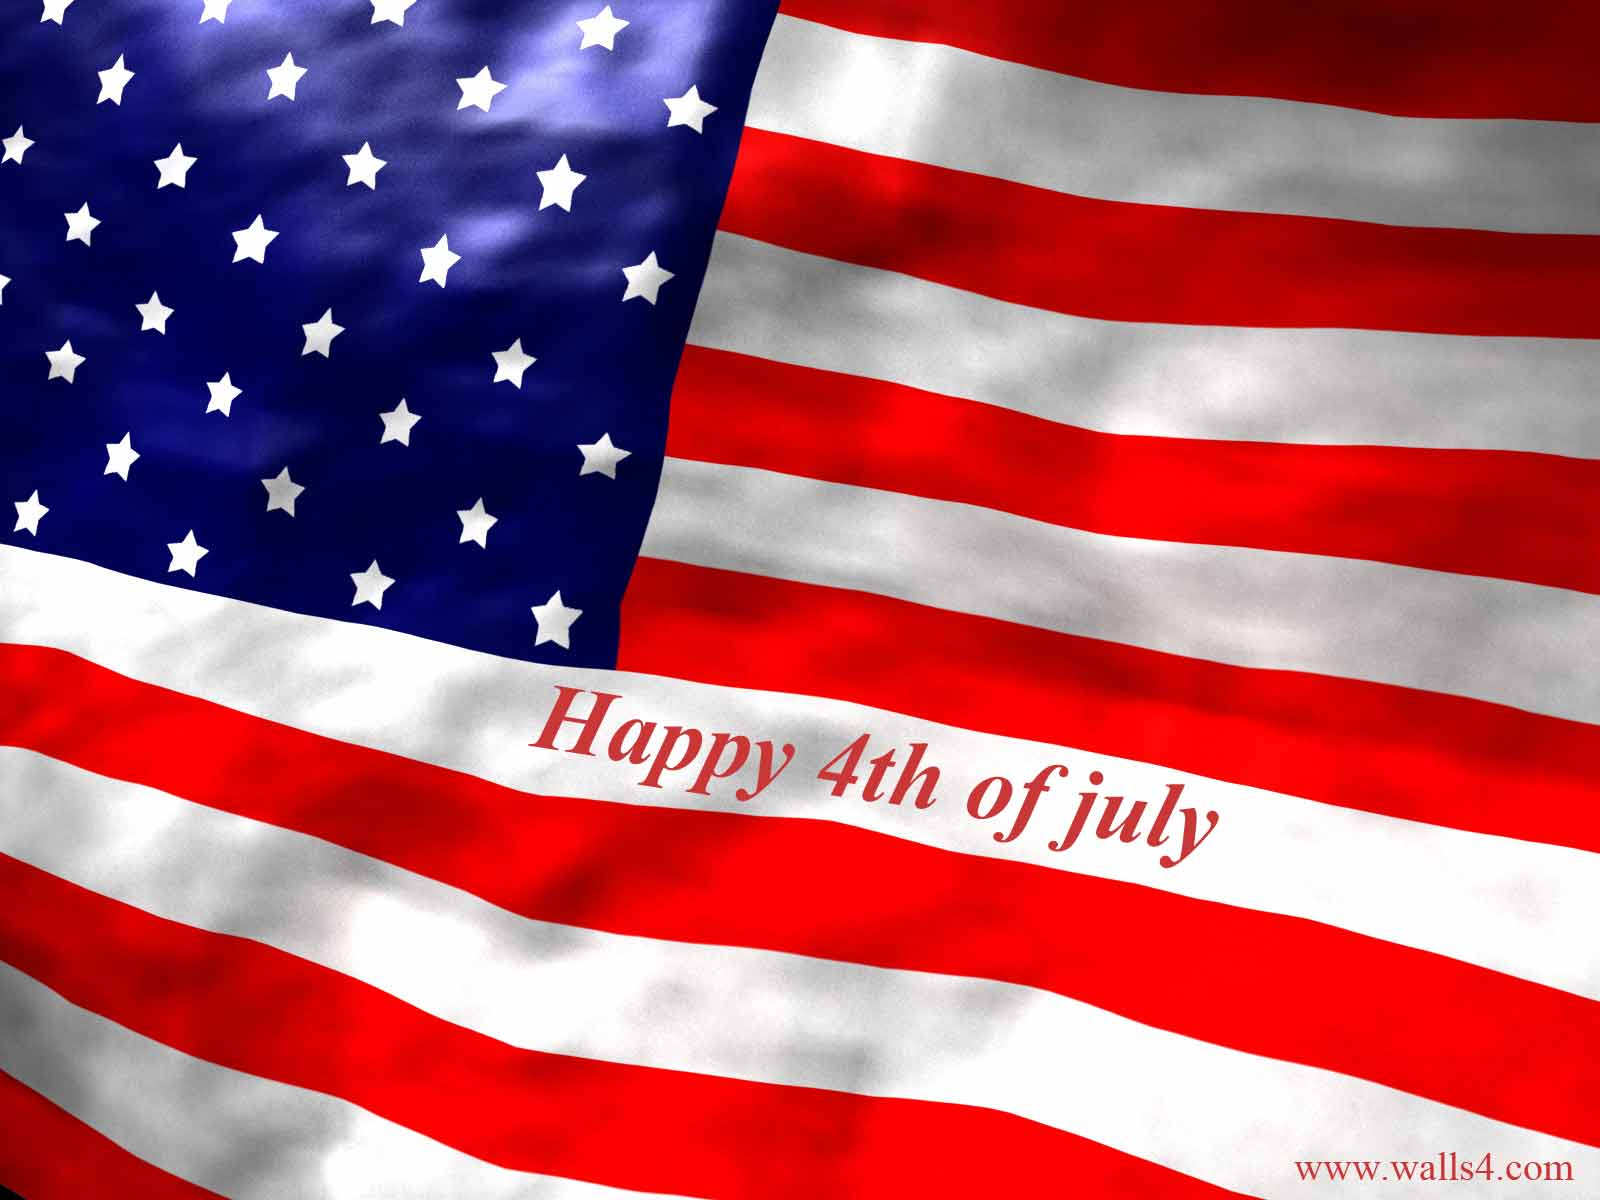 free wallpapers happy 4th of july independence day flag wallpaper